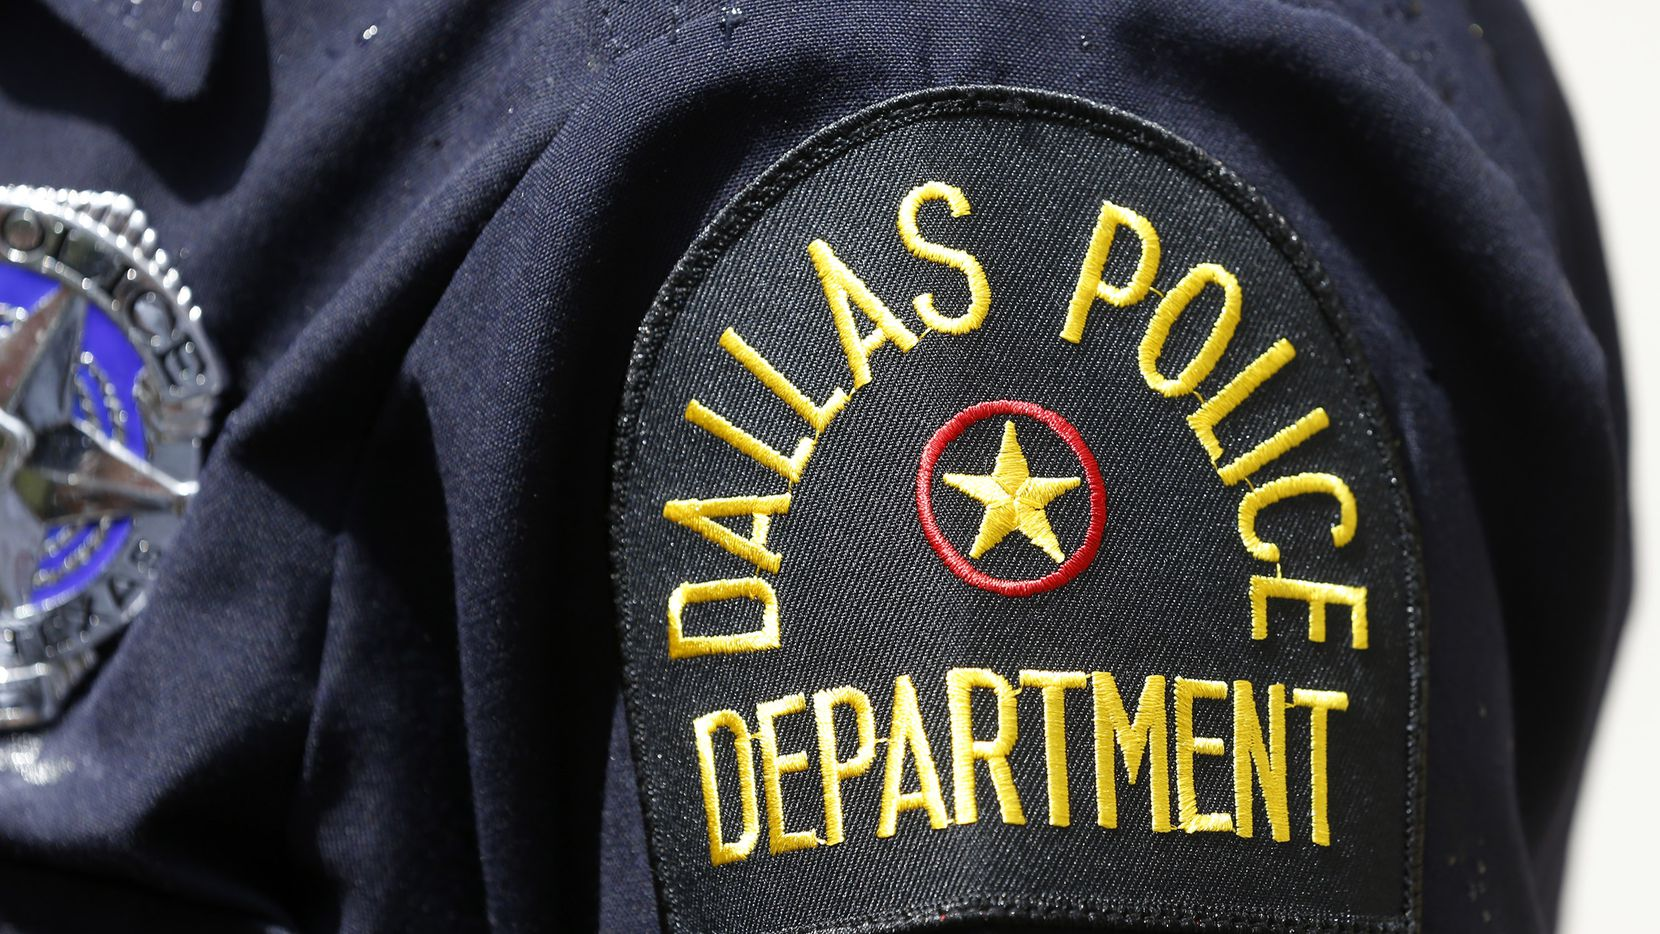 A police officer stands outside Dallas Police headquarters after a gunman opened fire Saturday, June 13, 2015, in Dallas. (AP Photo/Ron Jenkins)